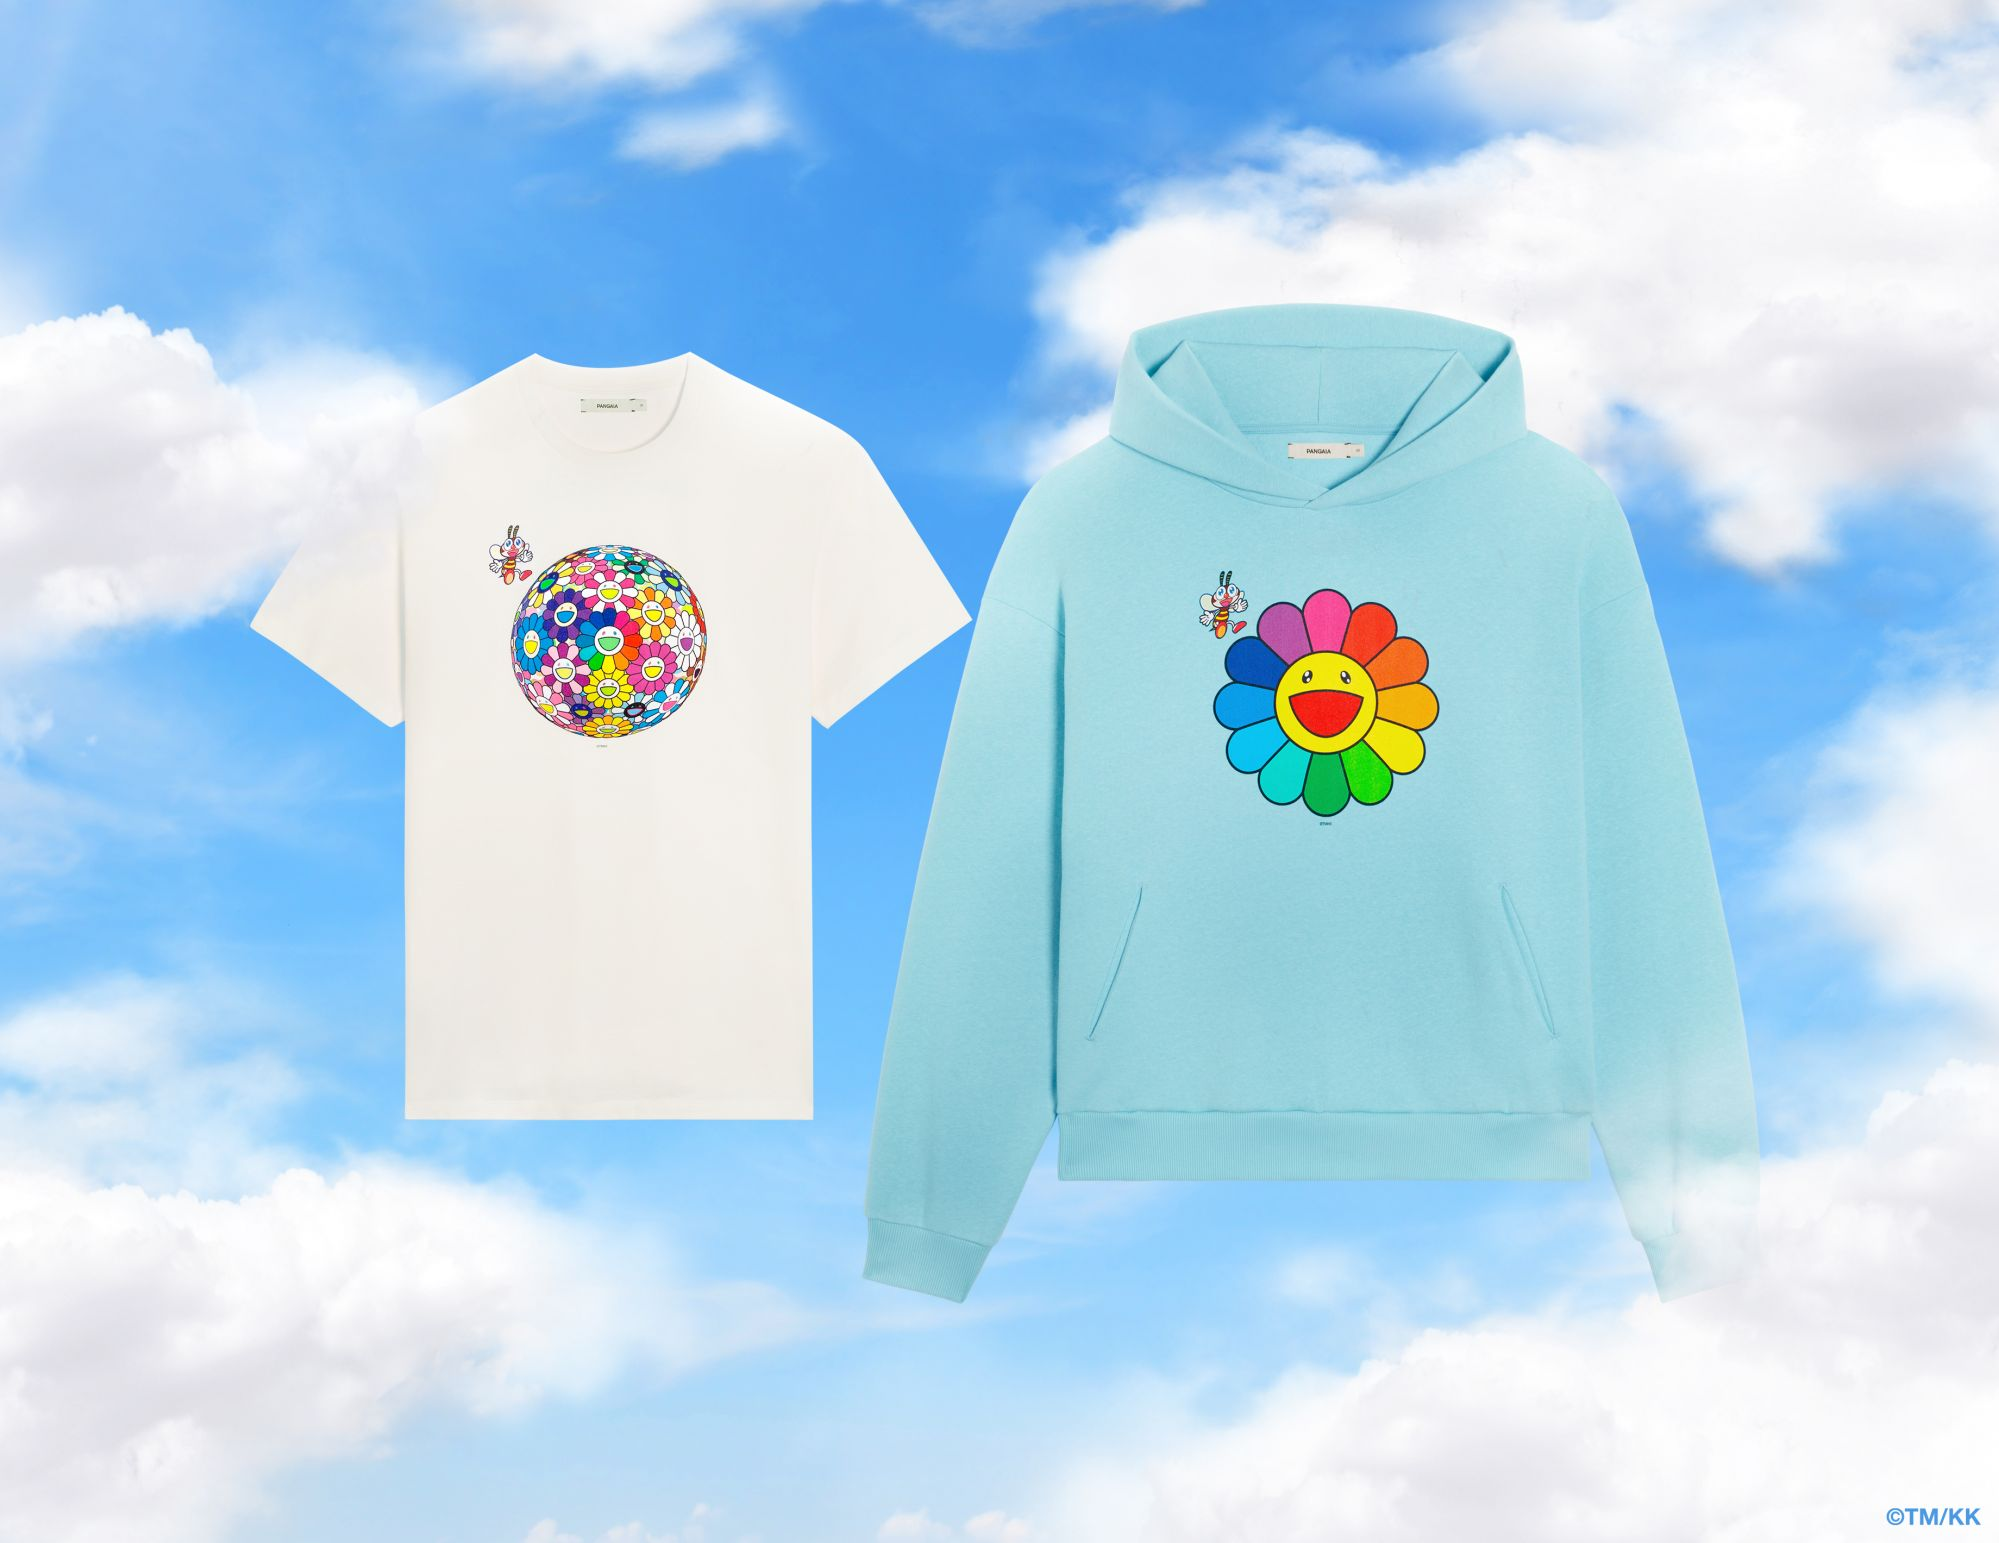 Pangaia x Takashi Murakami Launch New Capsule Collection To Raise Awareness On Bee Conservation